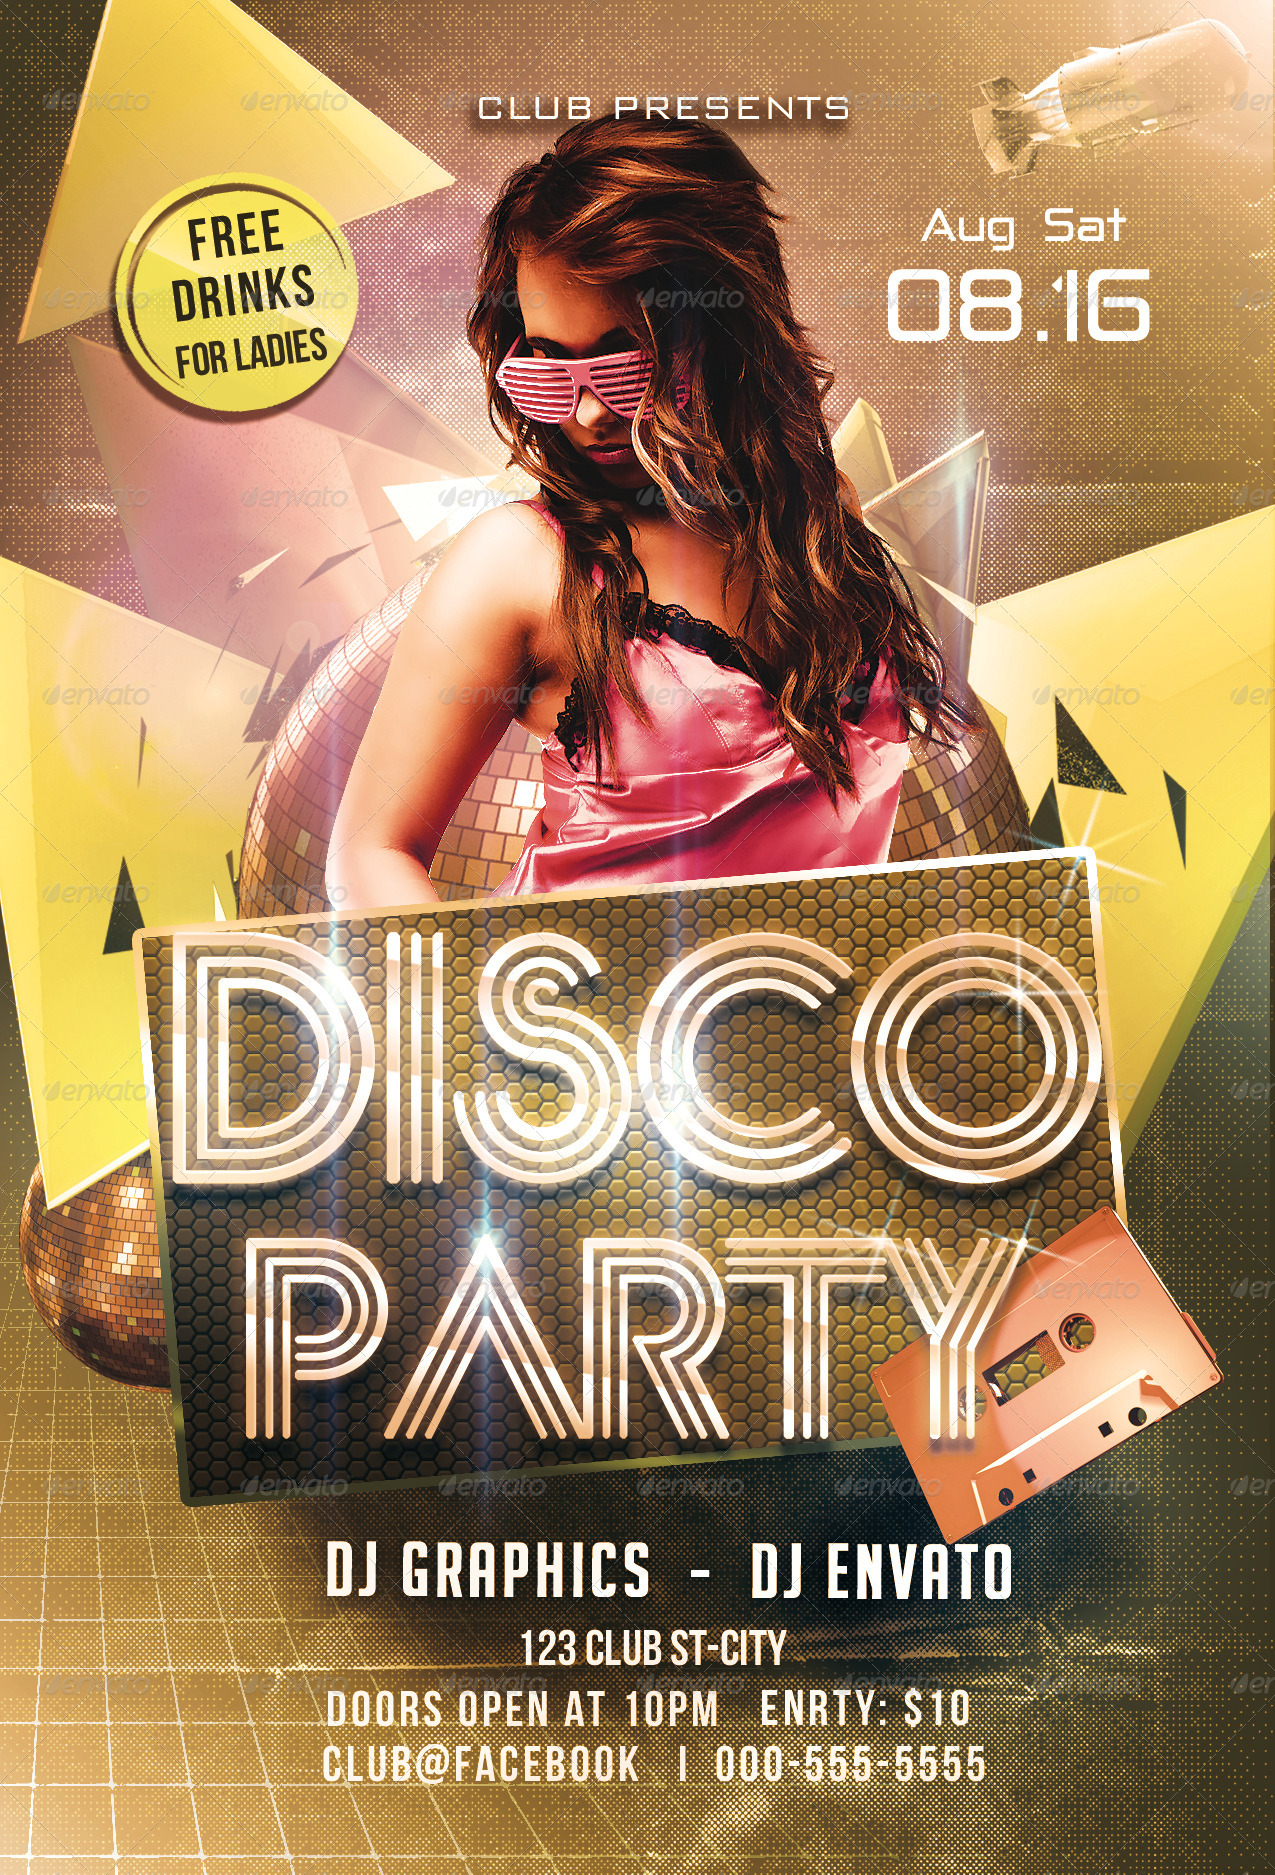 Disco Party Flyer Template by Arrow3000 | GraphicRiver